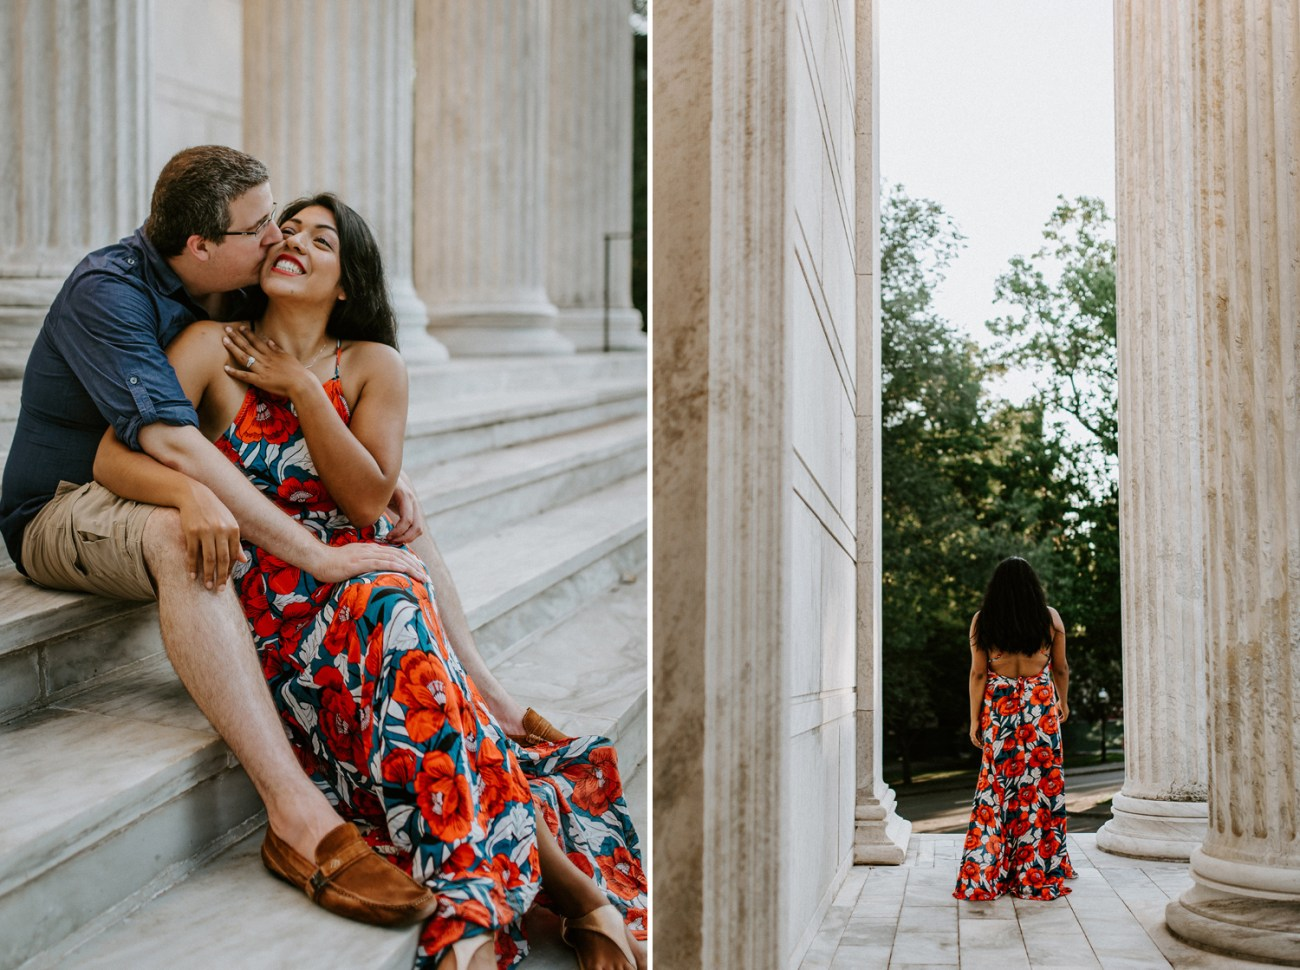 Princeton University Engagement Session Photos, New Jersey Wedding Photographer, Anais Possamai Photography